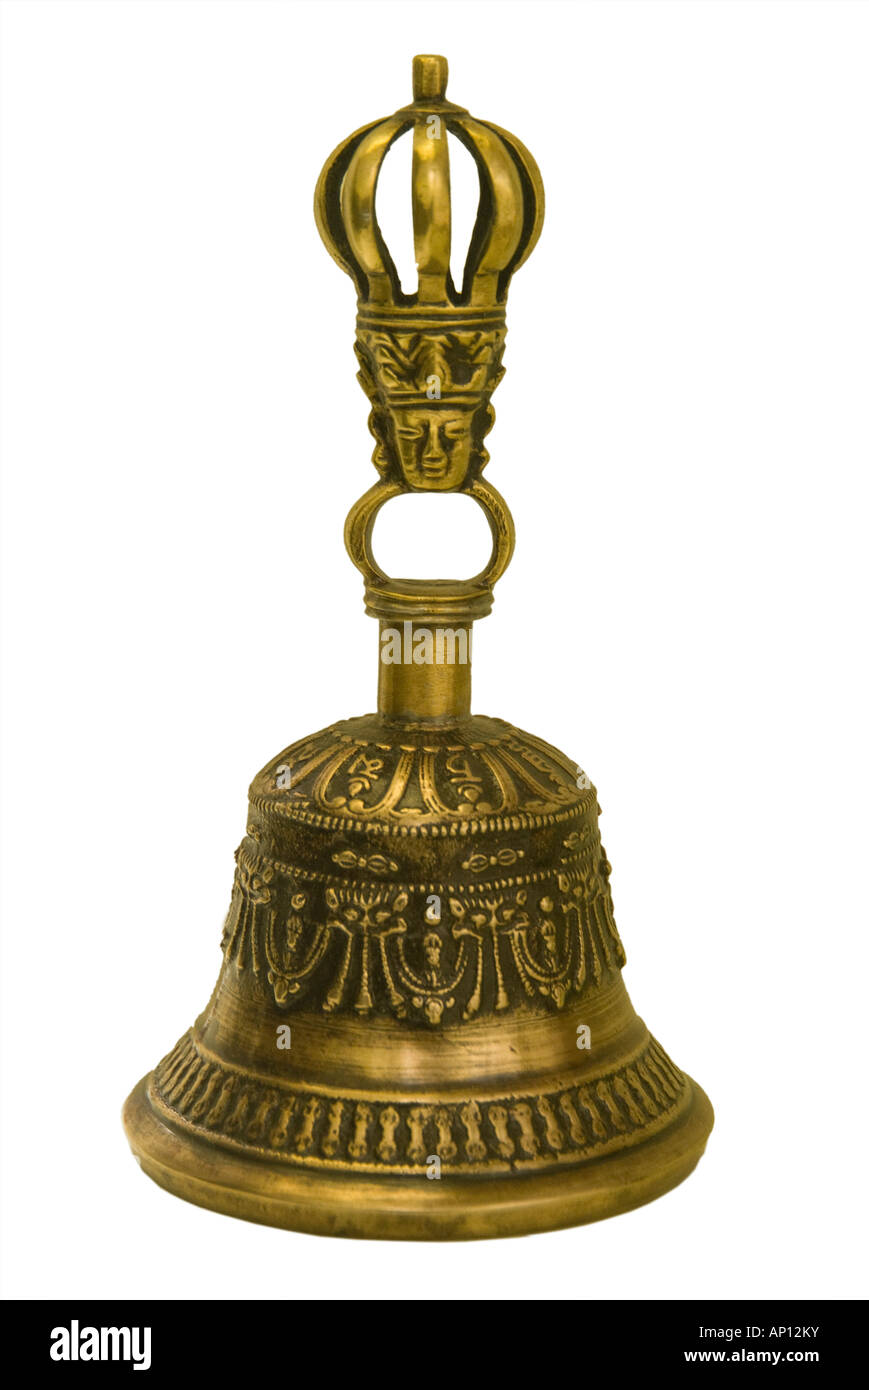 tibetan buddhist bell brass ritual rite music instrument background Artefact antique old  traditional local metal - Stock Image